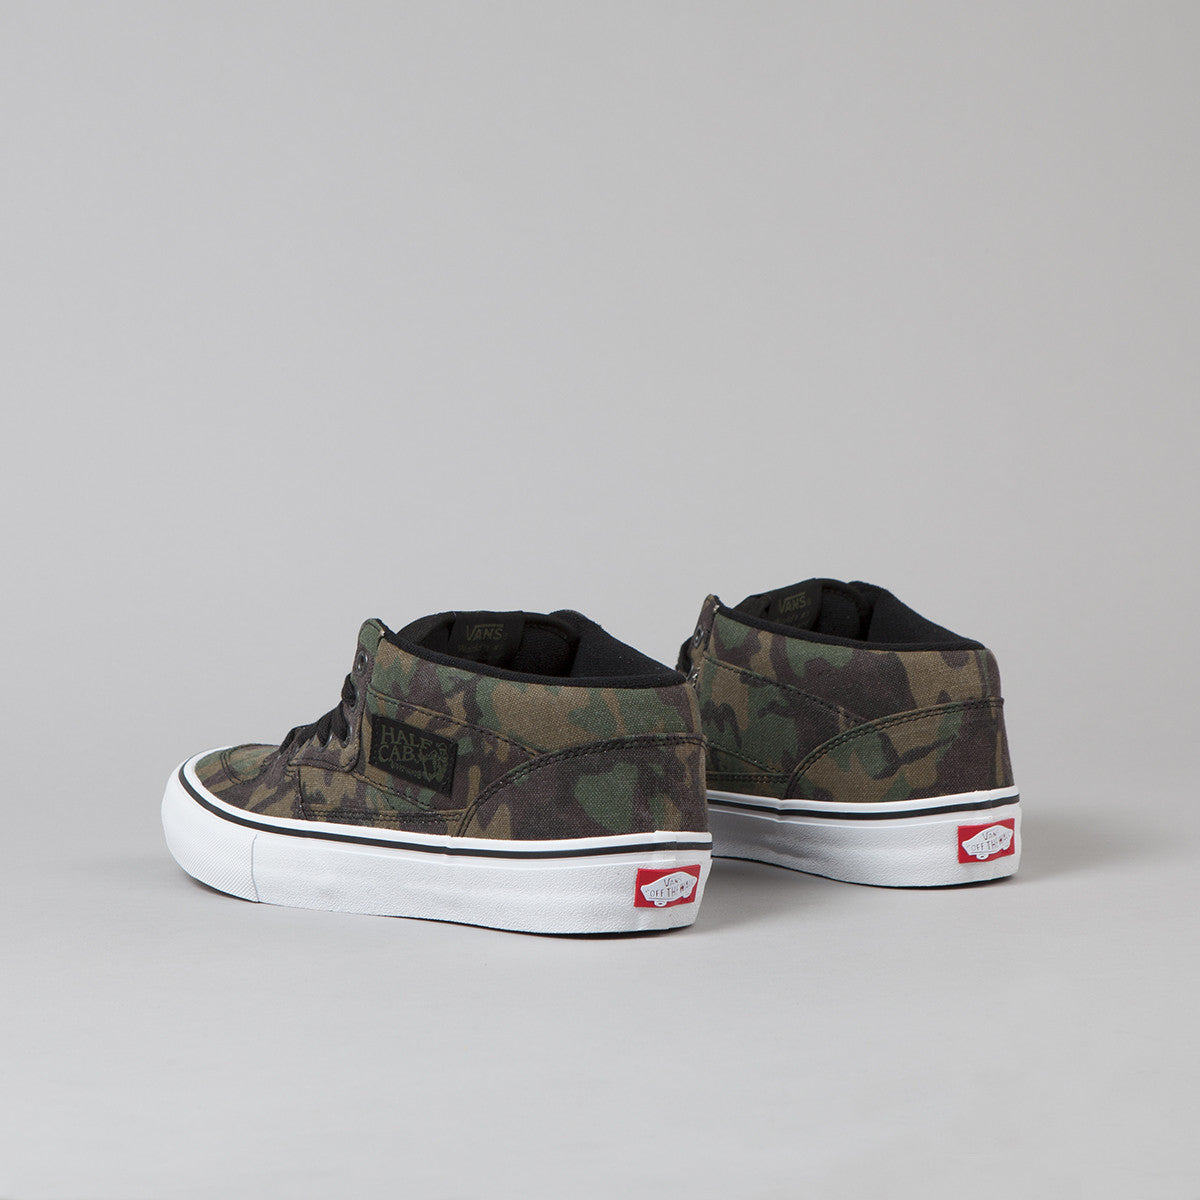 Vans Half Cab Pro Shoes - Camo / Black